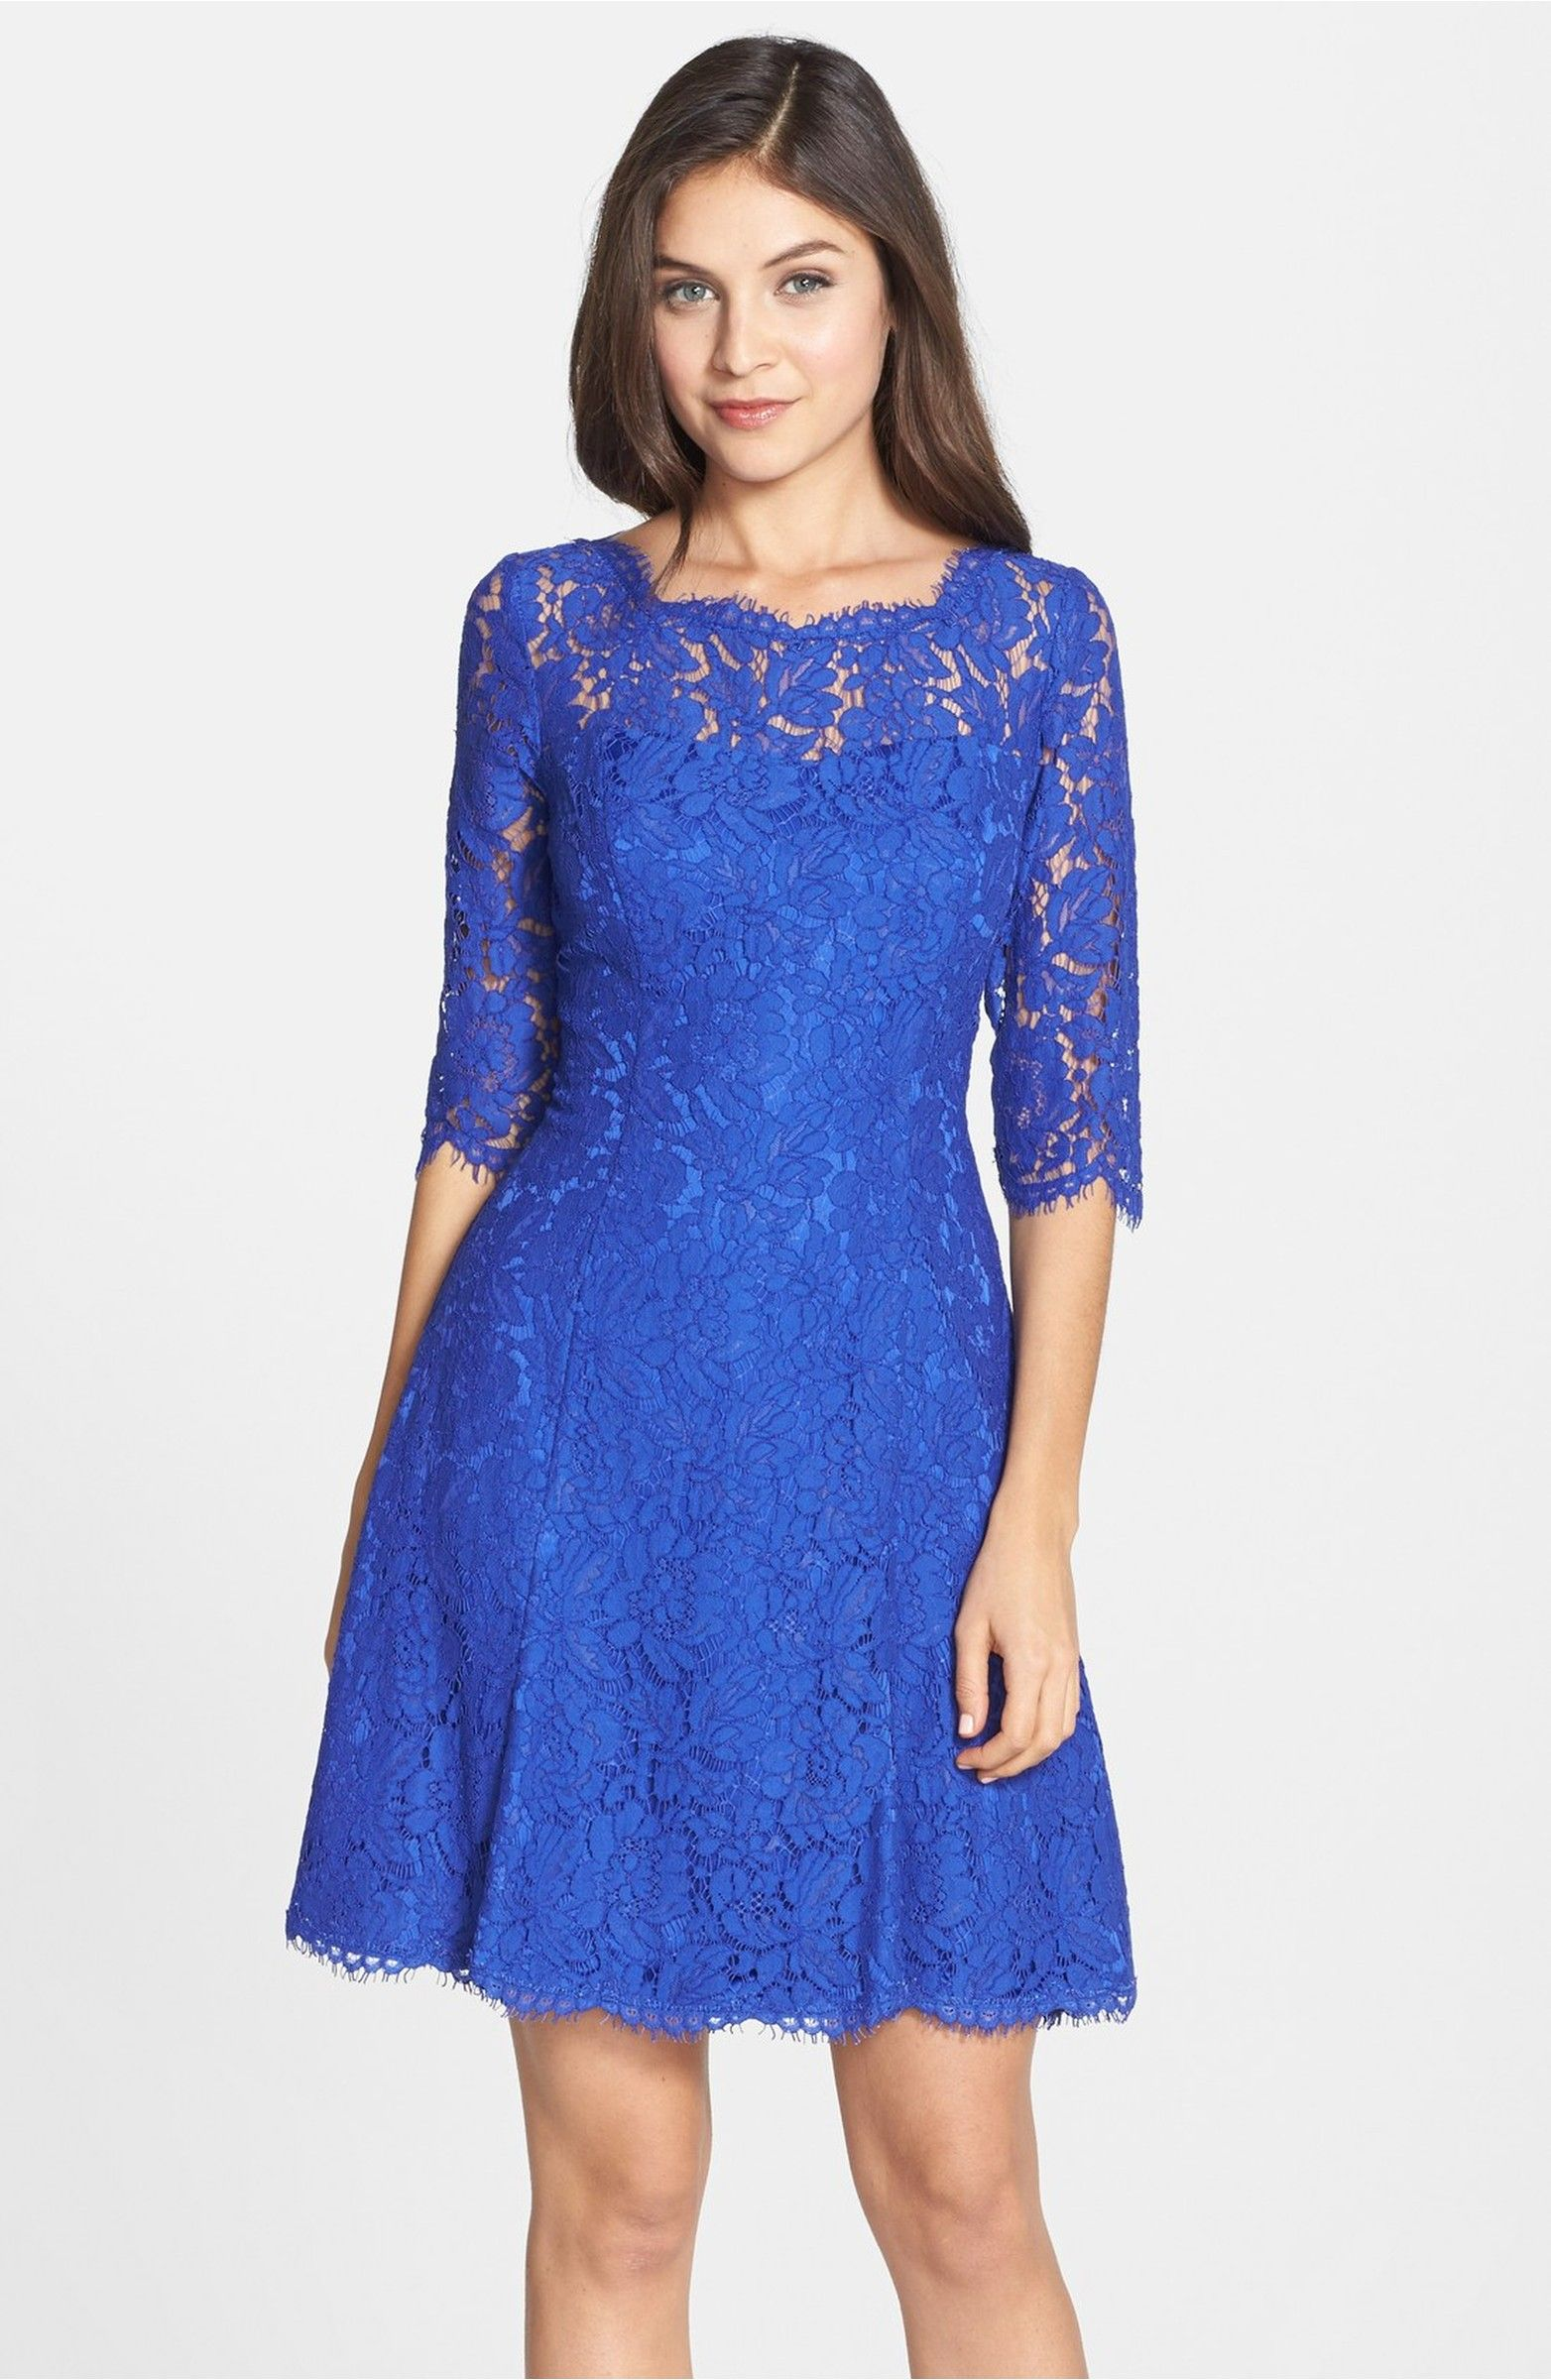 Lace dress navy  Lace Fit u Flare Dress  Fit flare dress Nordstrom and Quarter sleeve